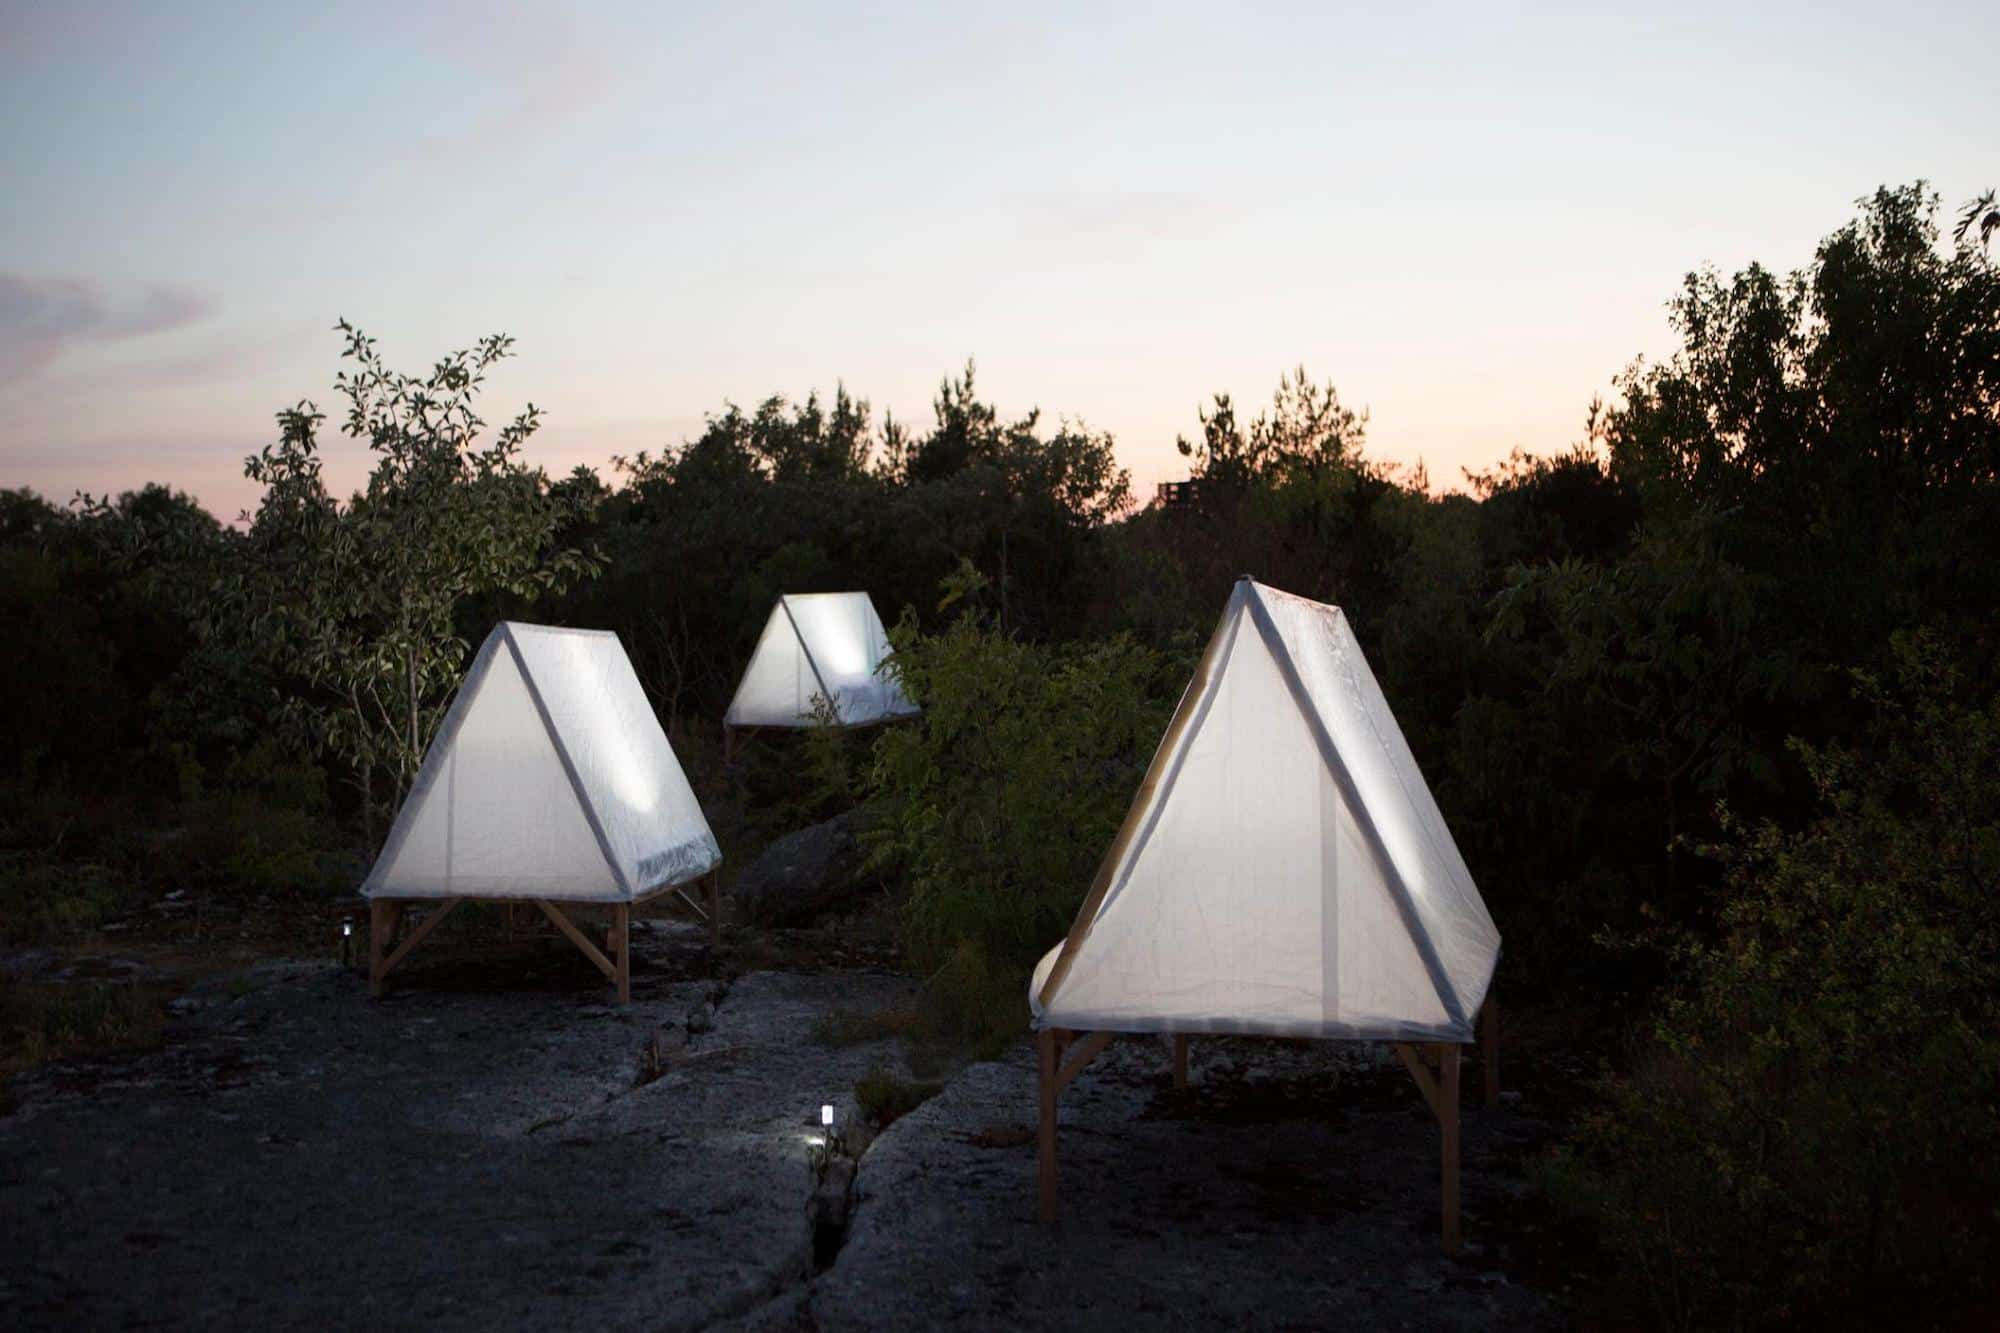 inflatable solar lightcamping